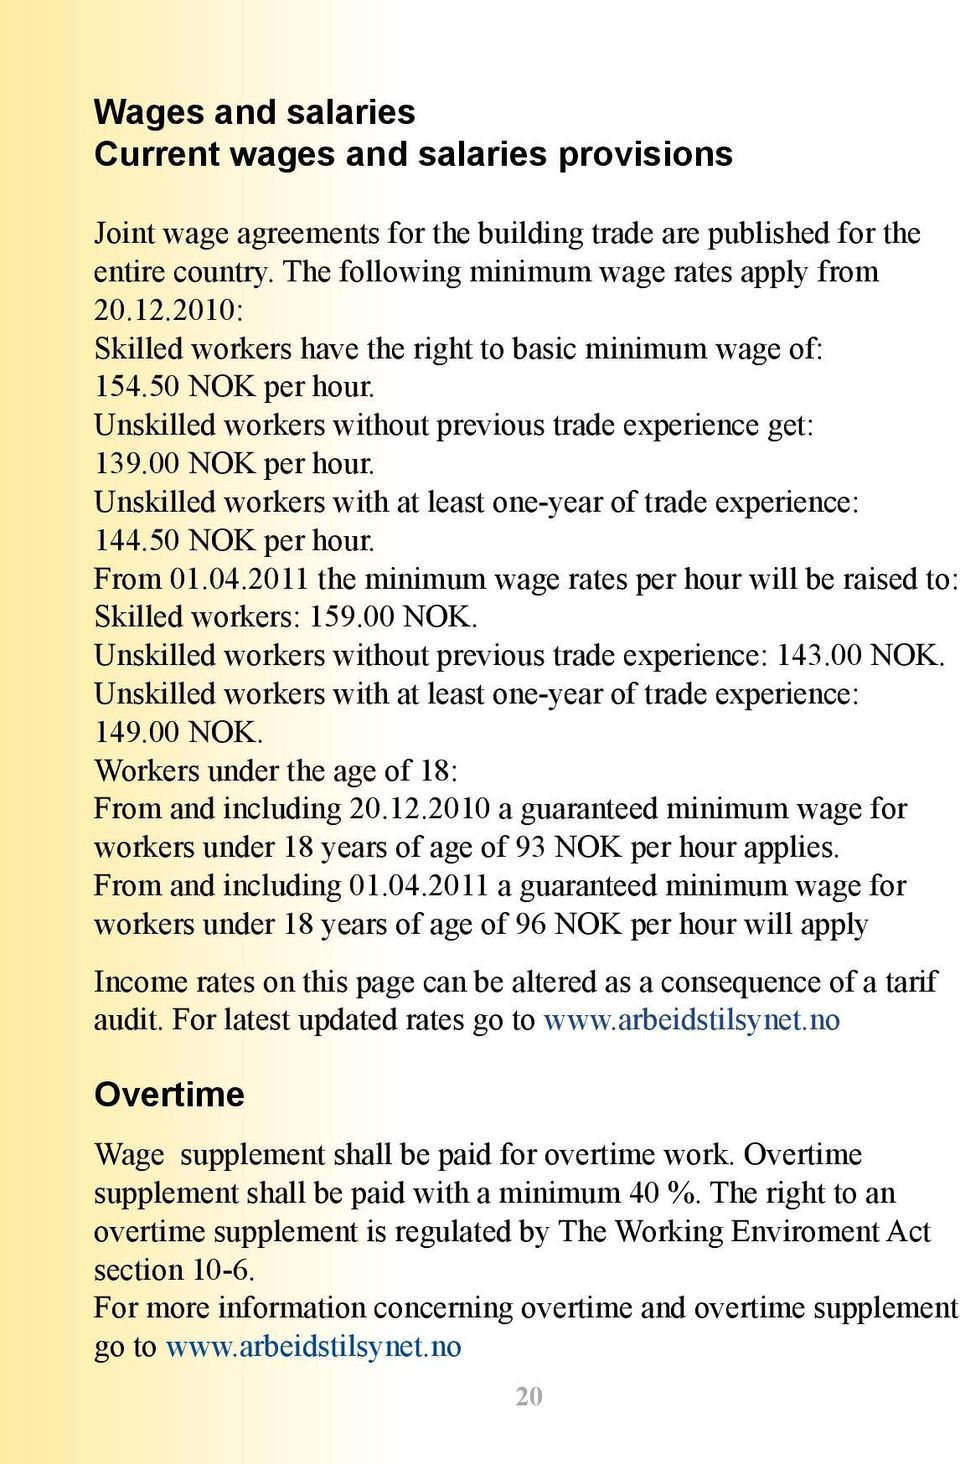 Unskilled workers with at least one-year of trade experience: 144.50 NOK per hour. From 01.04.2011 the minimum wage rates per hour will be raised to: Skilled workers: 159.00 NOK.